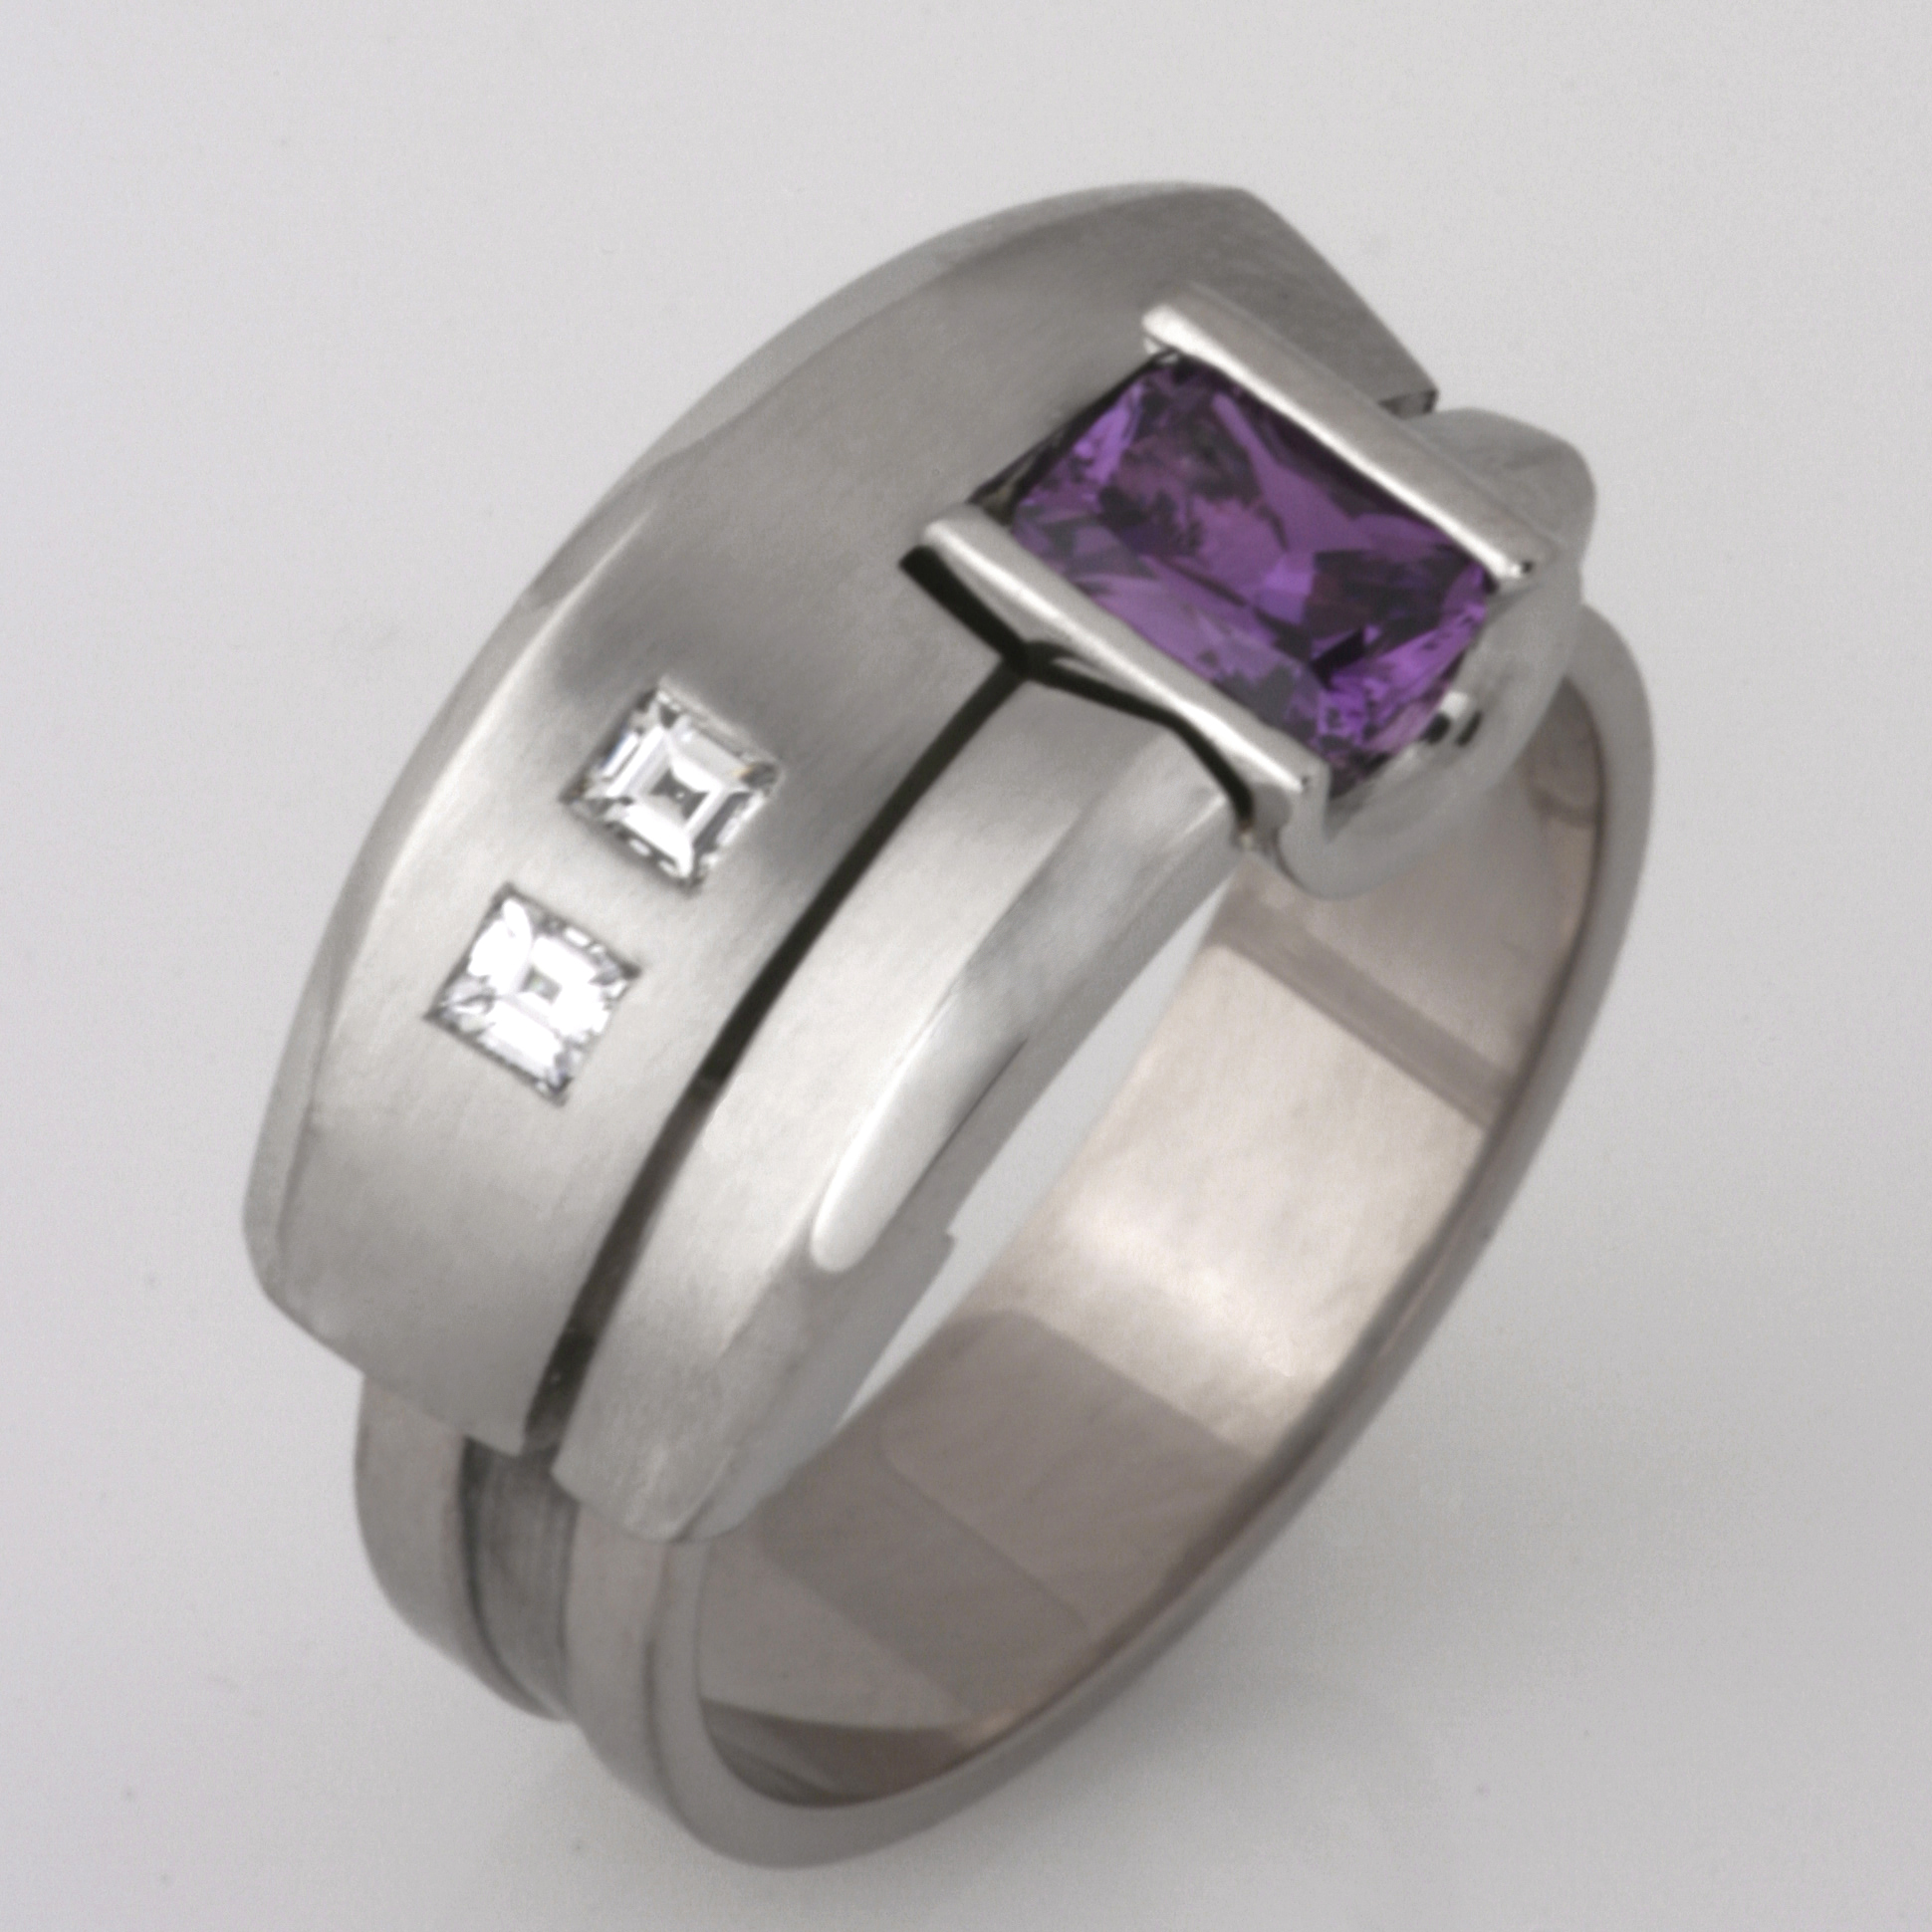 "R089  18ct white gold and palladium Archie style ring featuring a pink/purple Ceylon sapphire and two 2mm square Carre cut diamonds. Size ""O""  $3700"